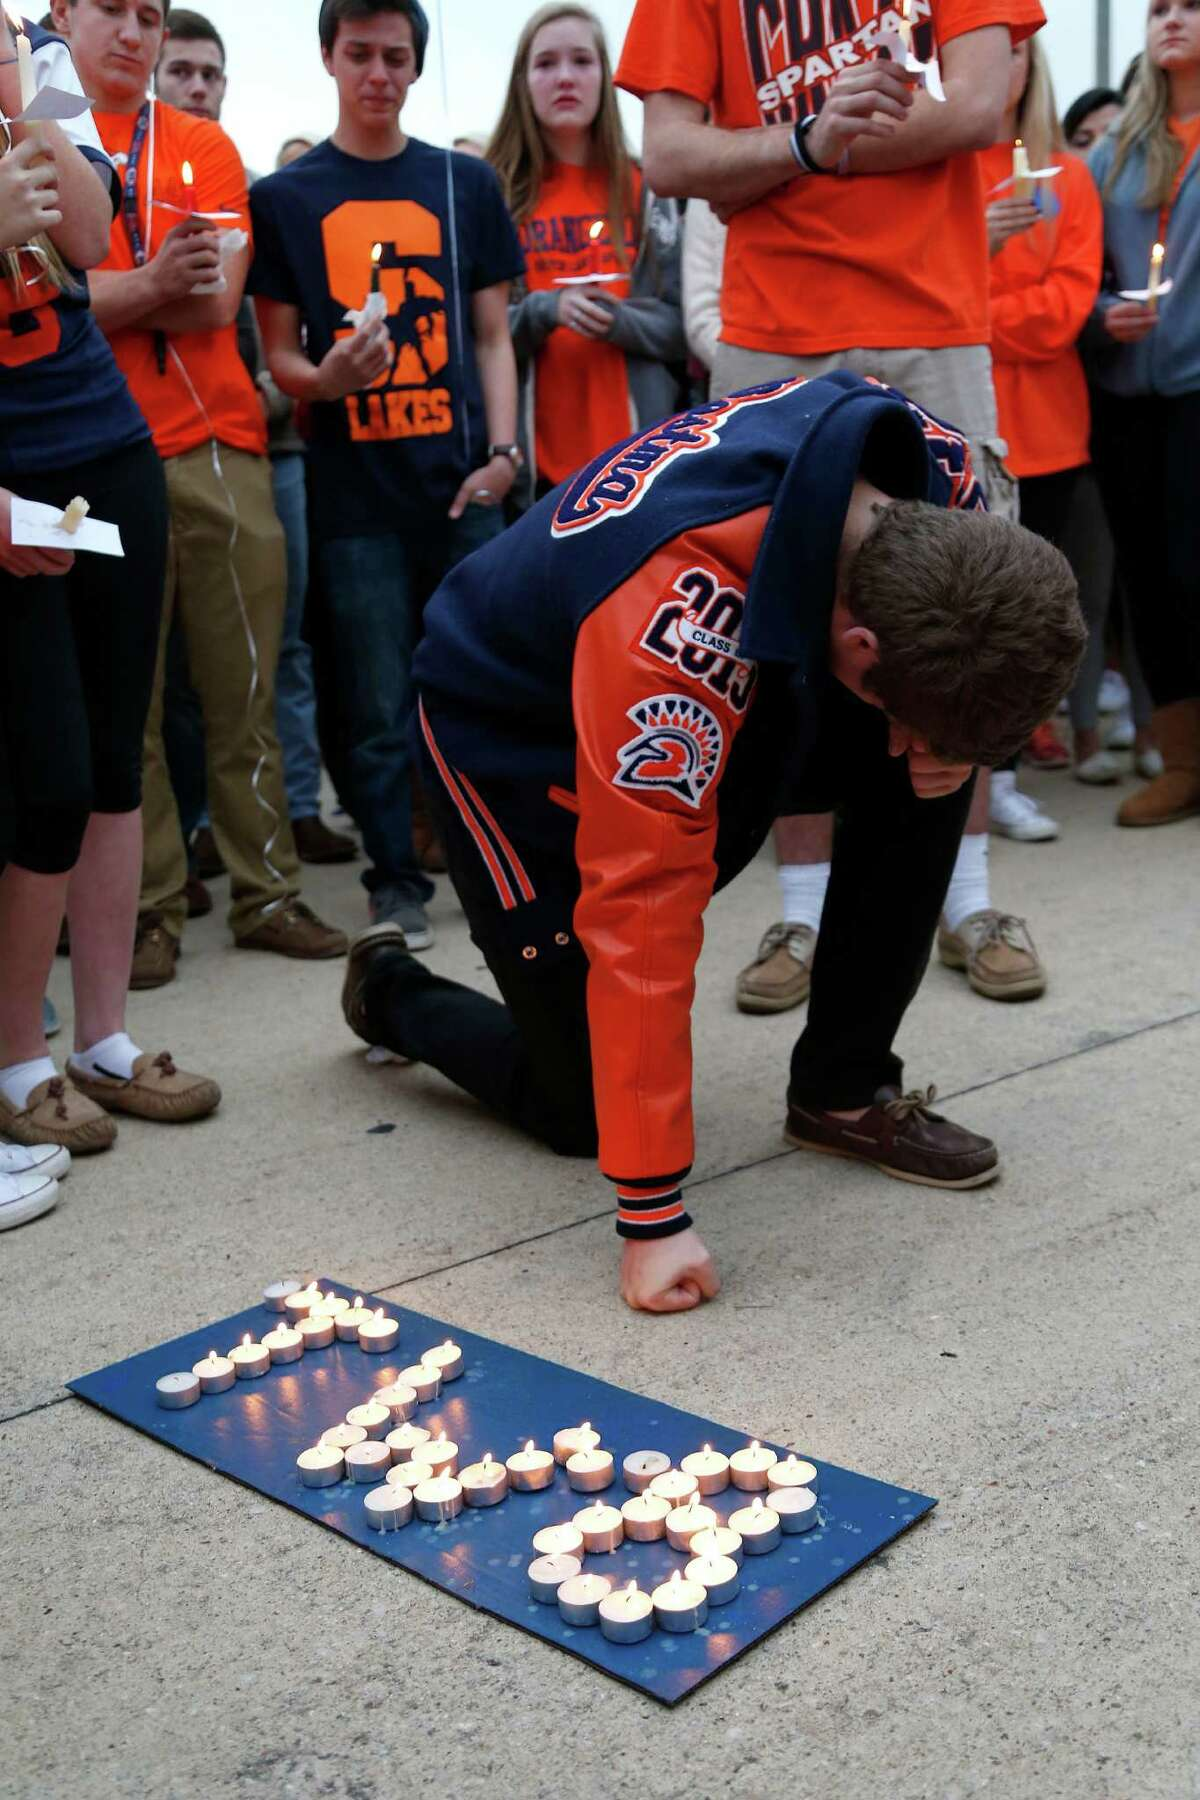 Shane Postma reacts during a candle light vigil for Seven Lakes student Trent Weber, Sunday, Dec. 7, 2014, in Houston. Trent Weber, a 17-year-old senior at Seven Lakes, and Terra Kubala, a 16-year-old sophomore at Cinco Ranch, were killed early Sunday morning after a pick-up truck flipped over in Katy.